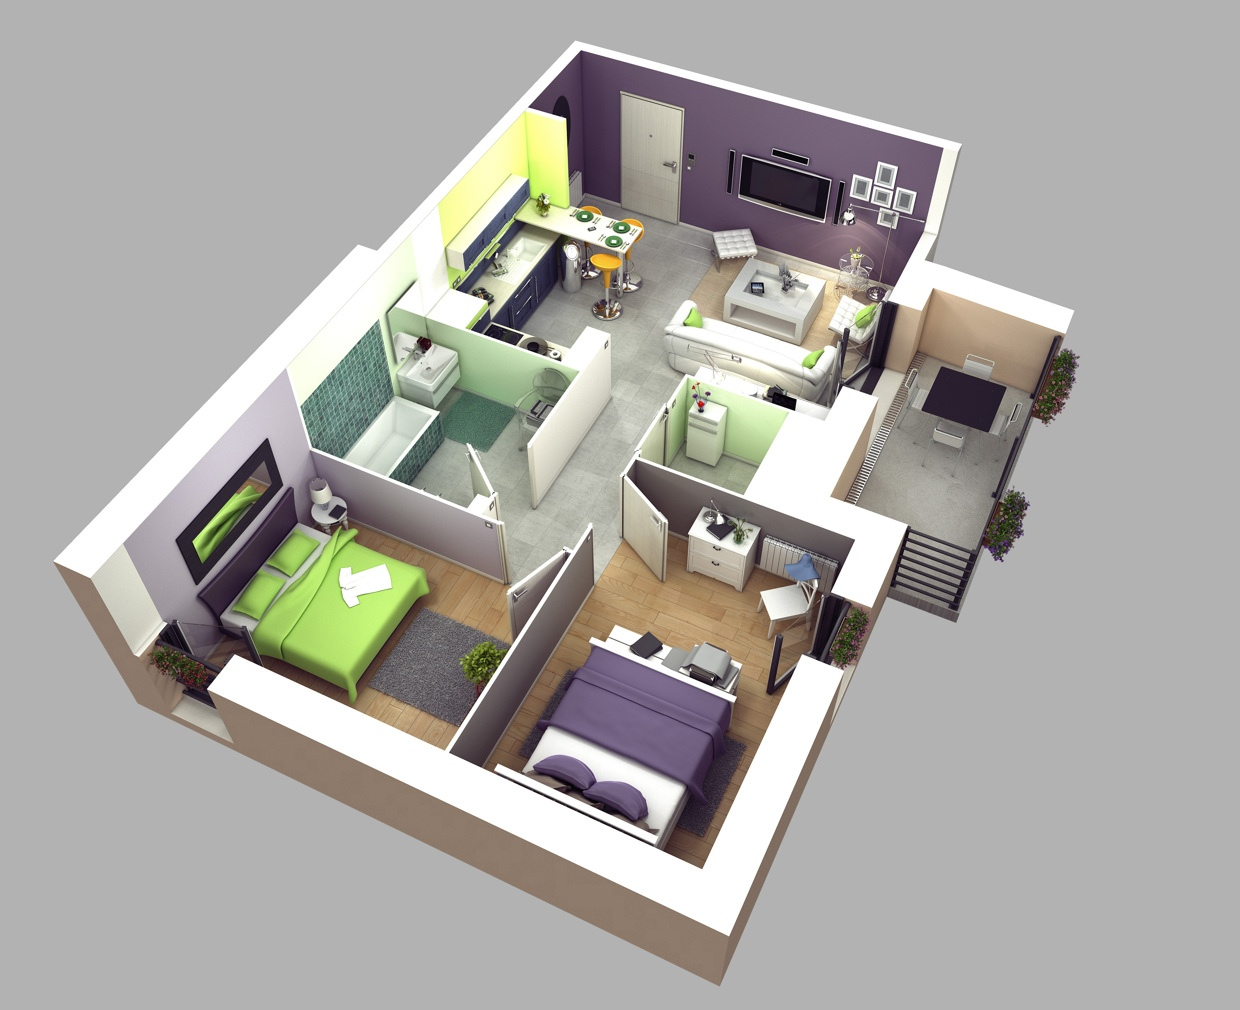 50 3d floor plans lay out designs for 2 bedroom house or 3d apartment layout